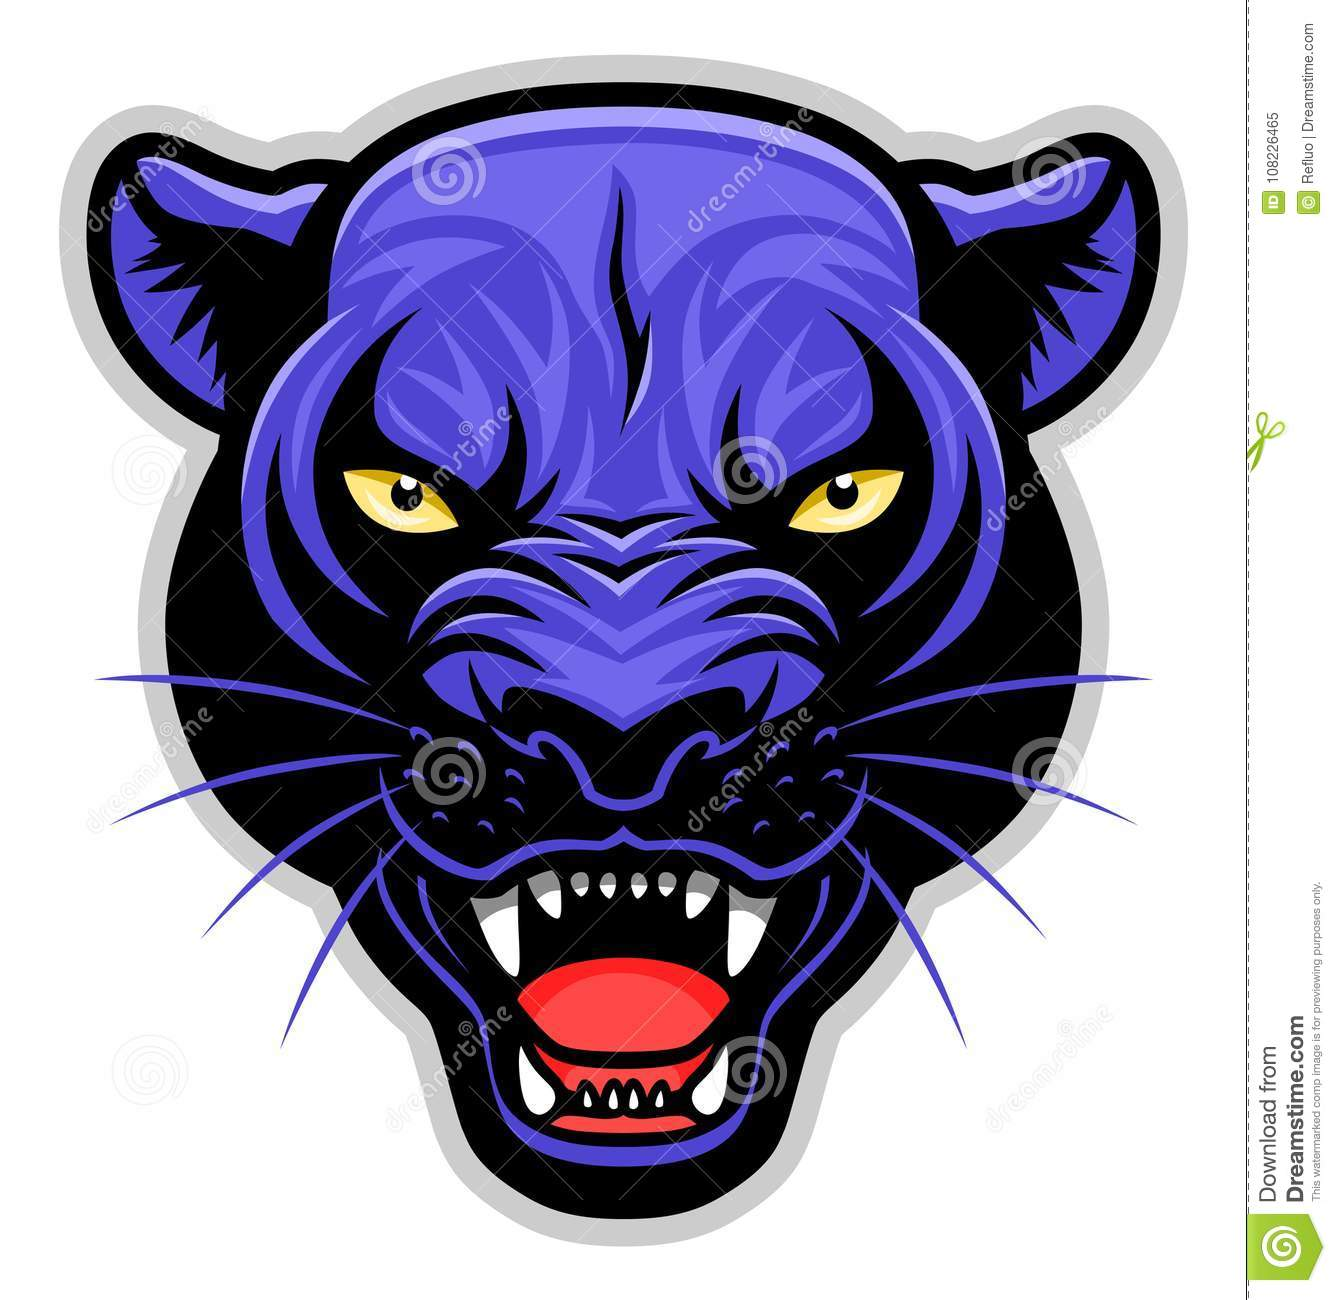 Growling Panther Face Stock Vector 585261455: Simple Panther Head Stock Vector. Illustration Of Black